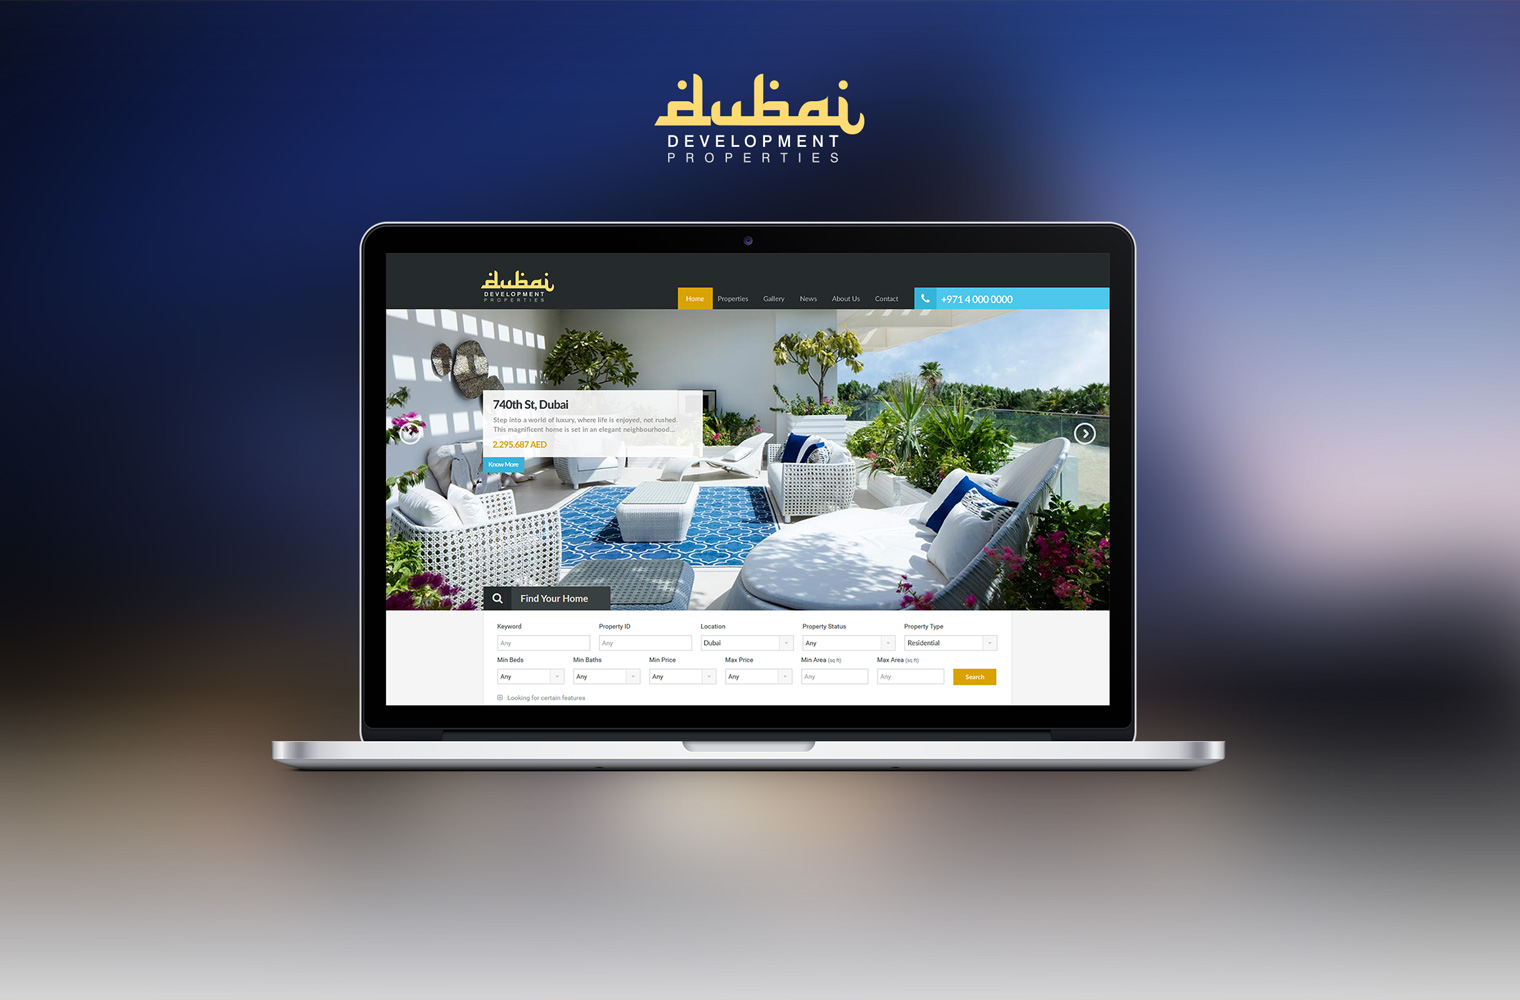 Dubai Development Properties